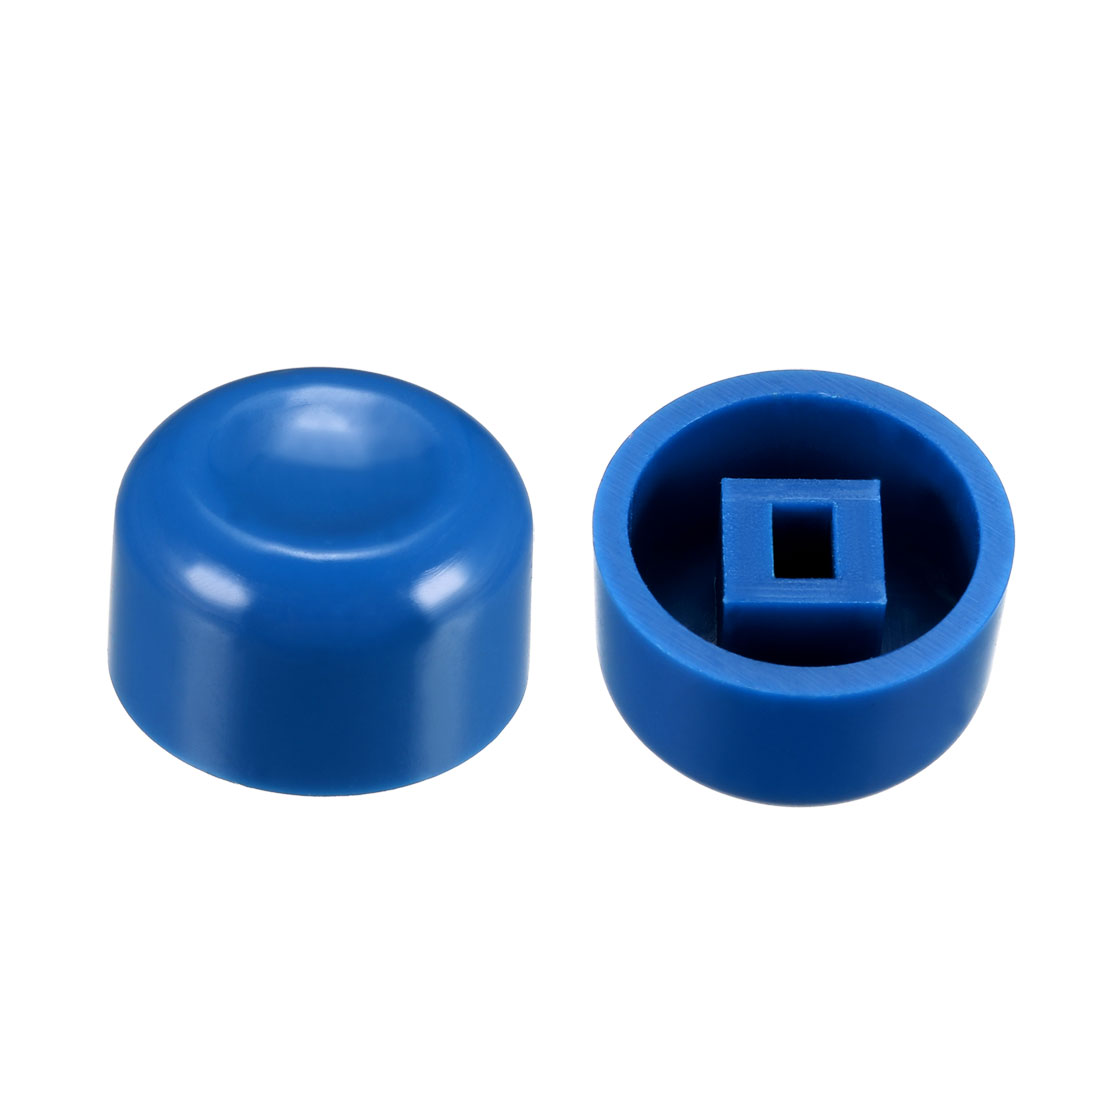 40Pcs Plastic 13.2x7.7mm Latching Pushbutton Tactile Switch Caps Cover Blue